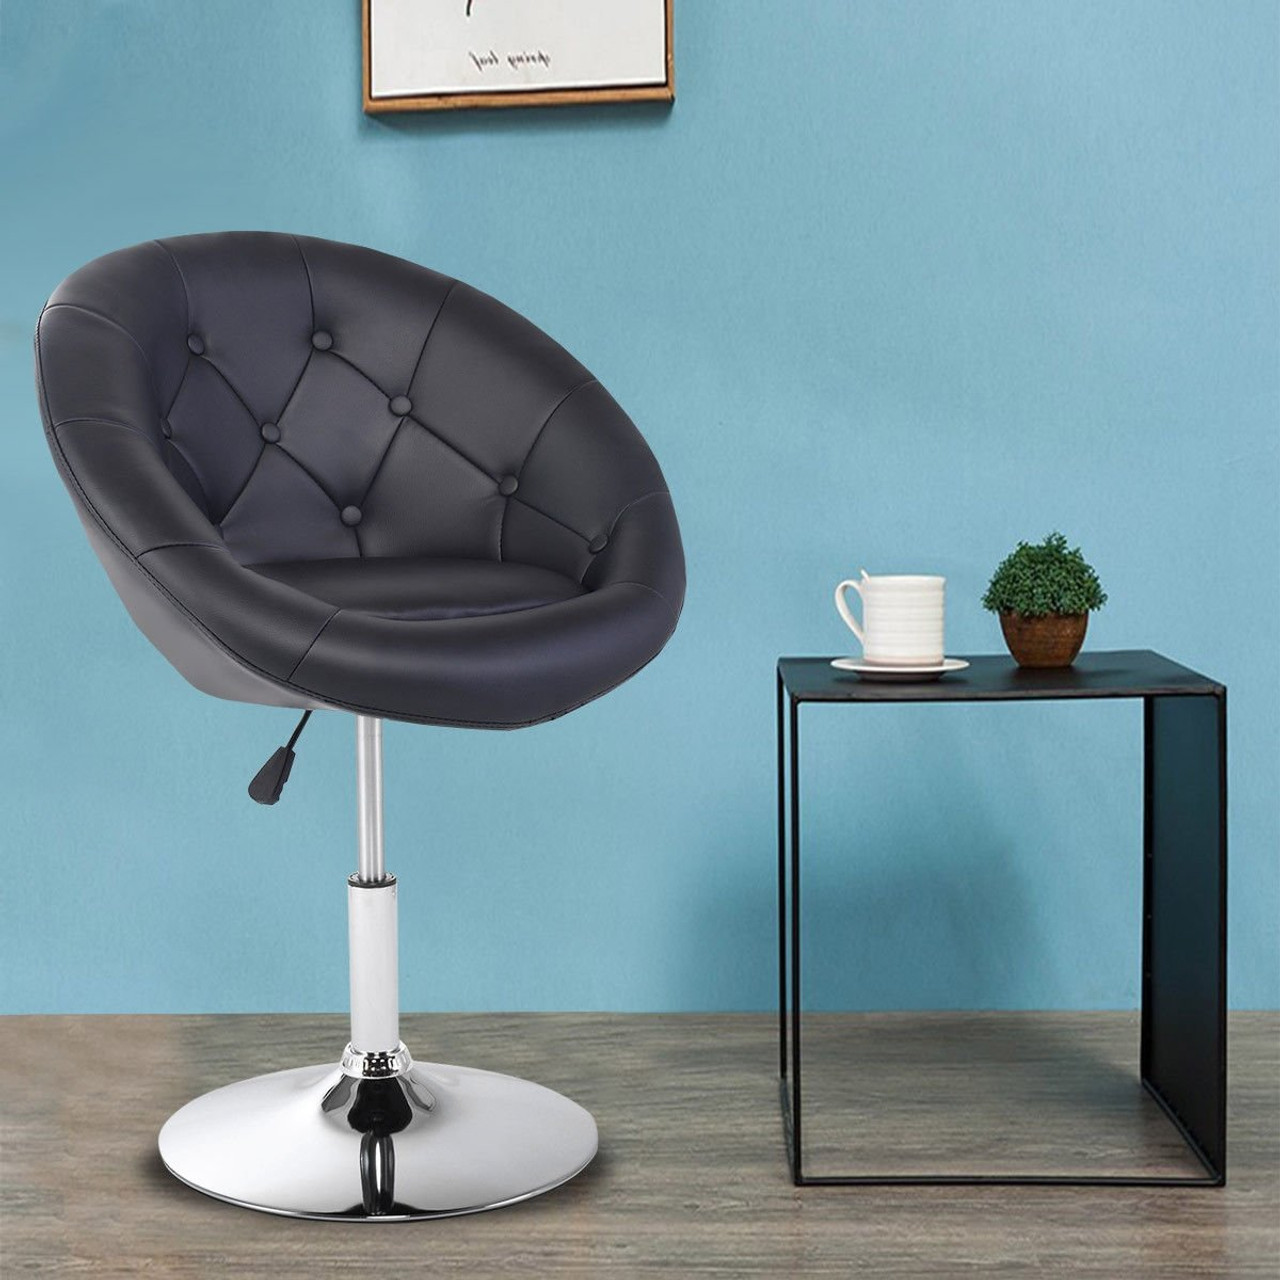 1pc Adjustable Modern Swivel Round Tufted Back Accent Chair Pu Leather Black Hw52961bk By Cw